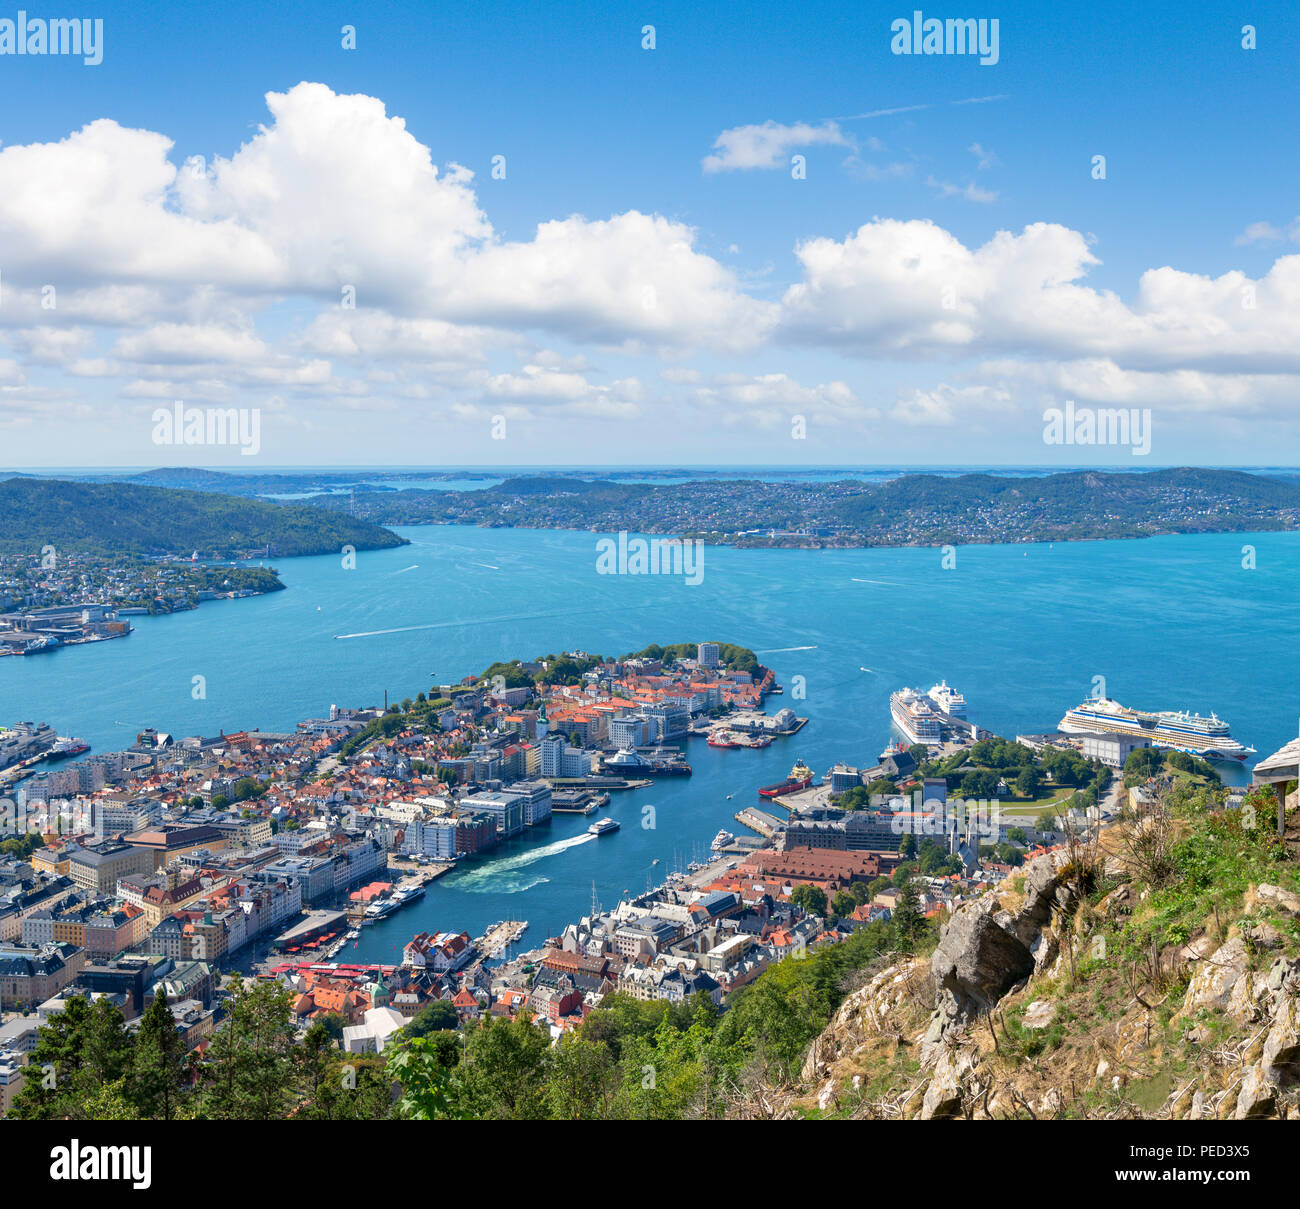 Bergen, Norway. View over the city from the the Fløyfjellet viewpoint a the top of Mount Fløyen, Bergen, Norway Stock Photo